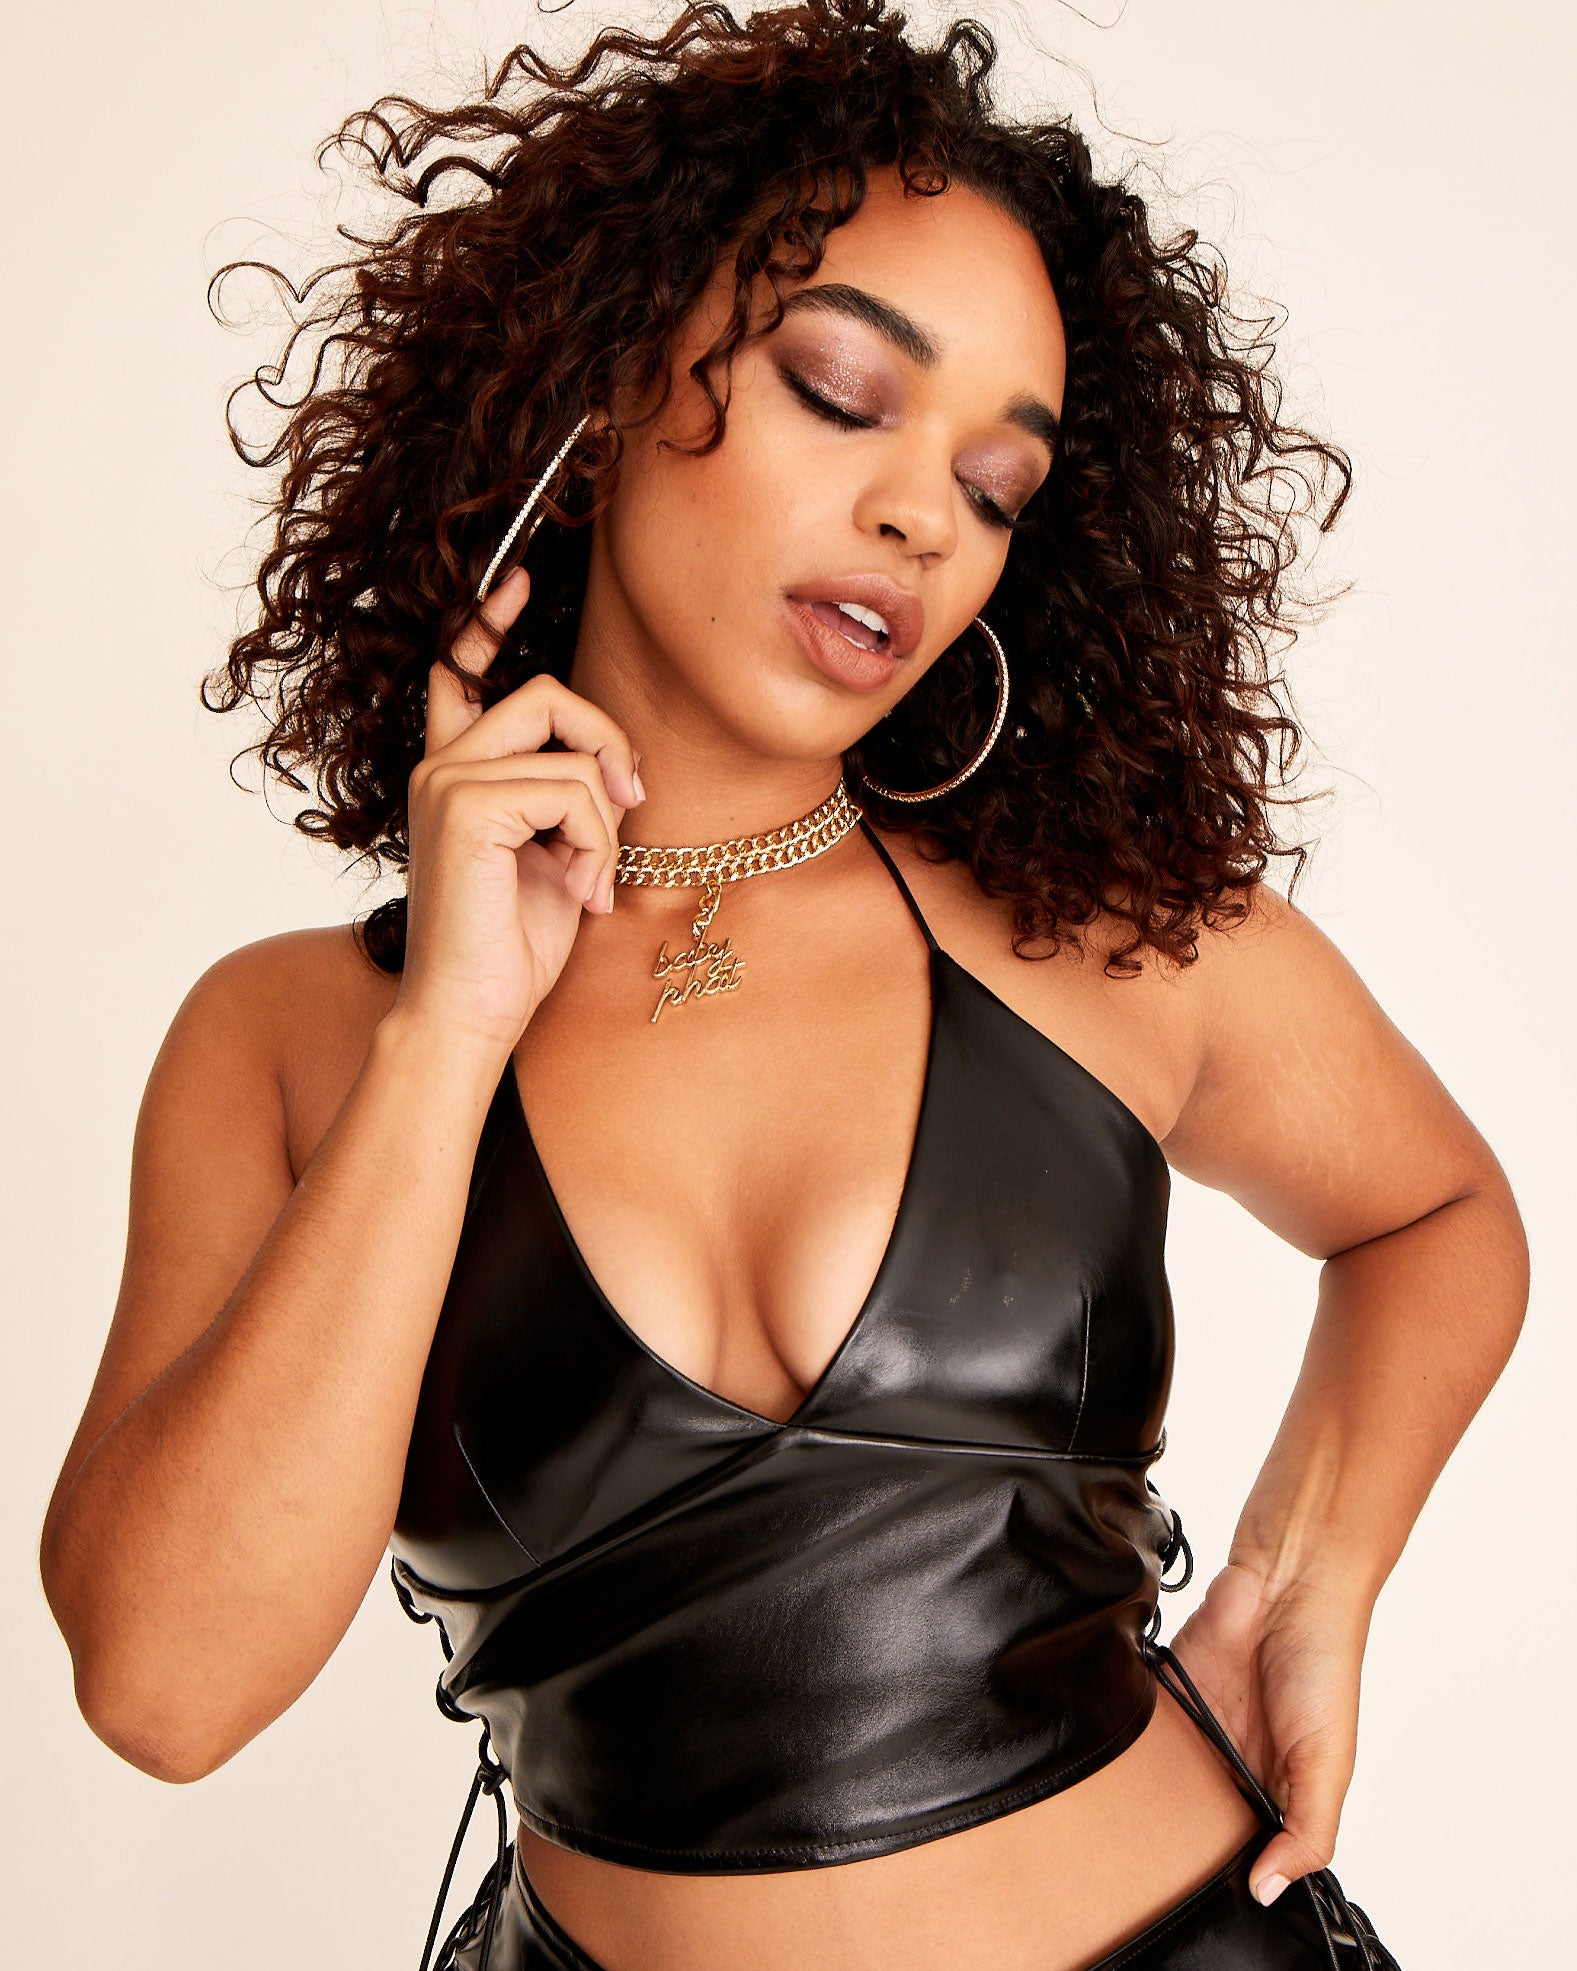 Black vinyl stretch halter with metal Baby Phat cat logo at the back zipper. Lace up sides with metal tip cord.